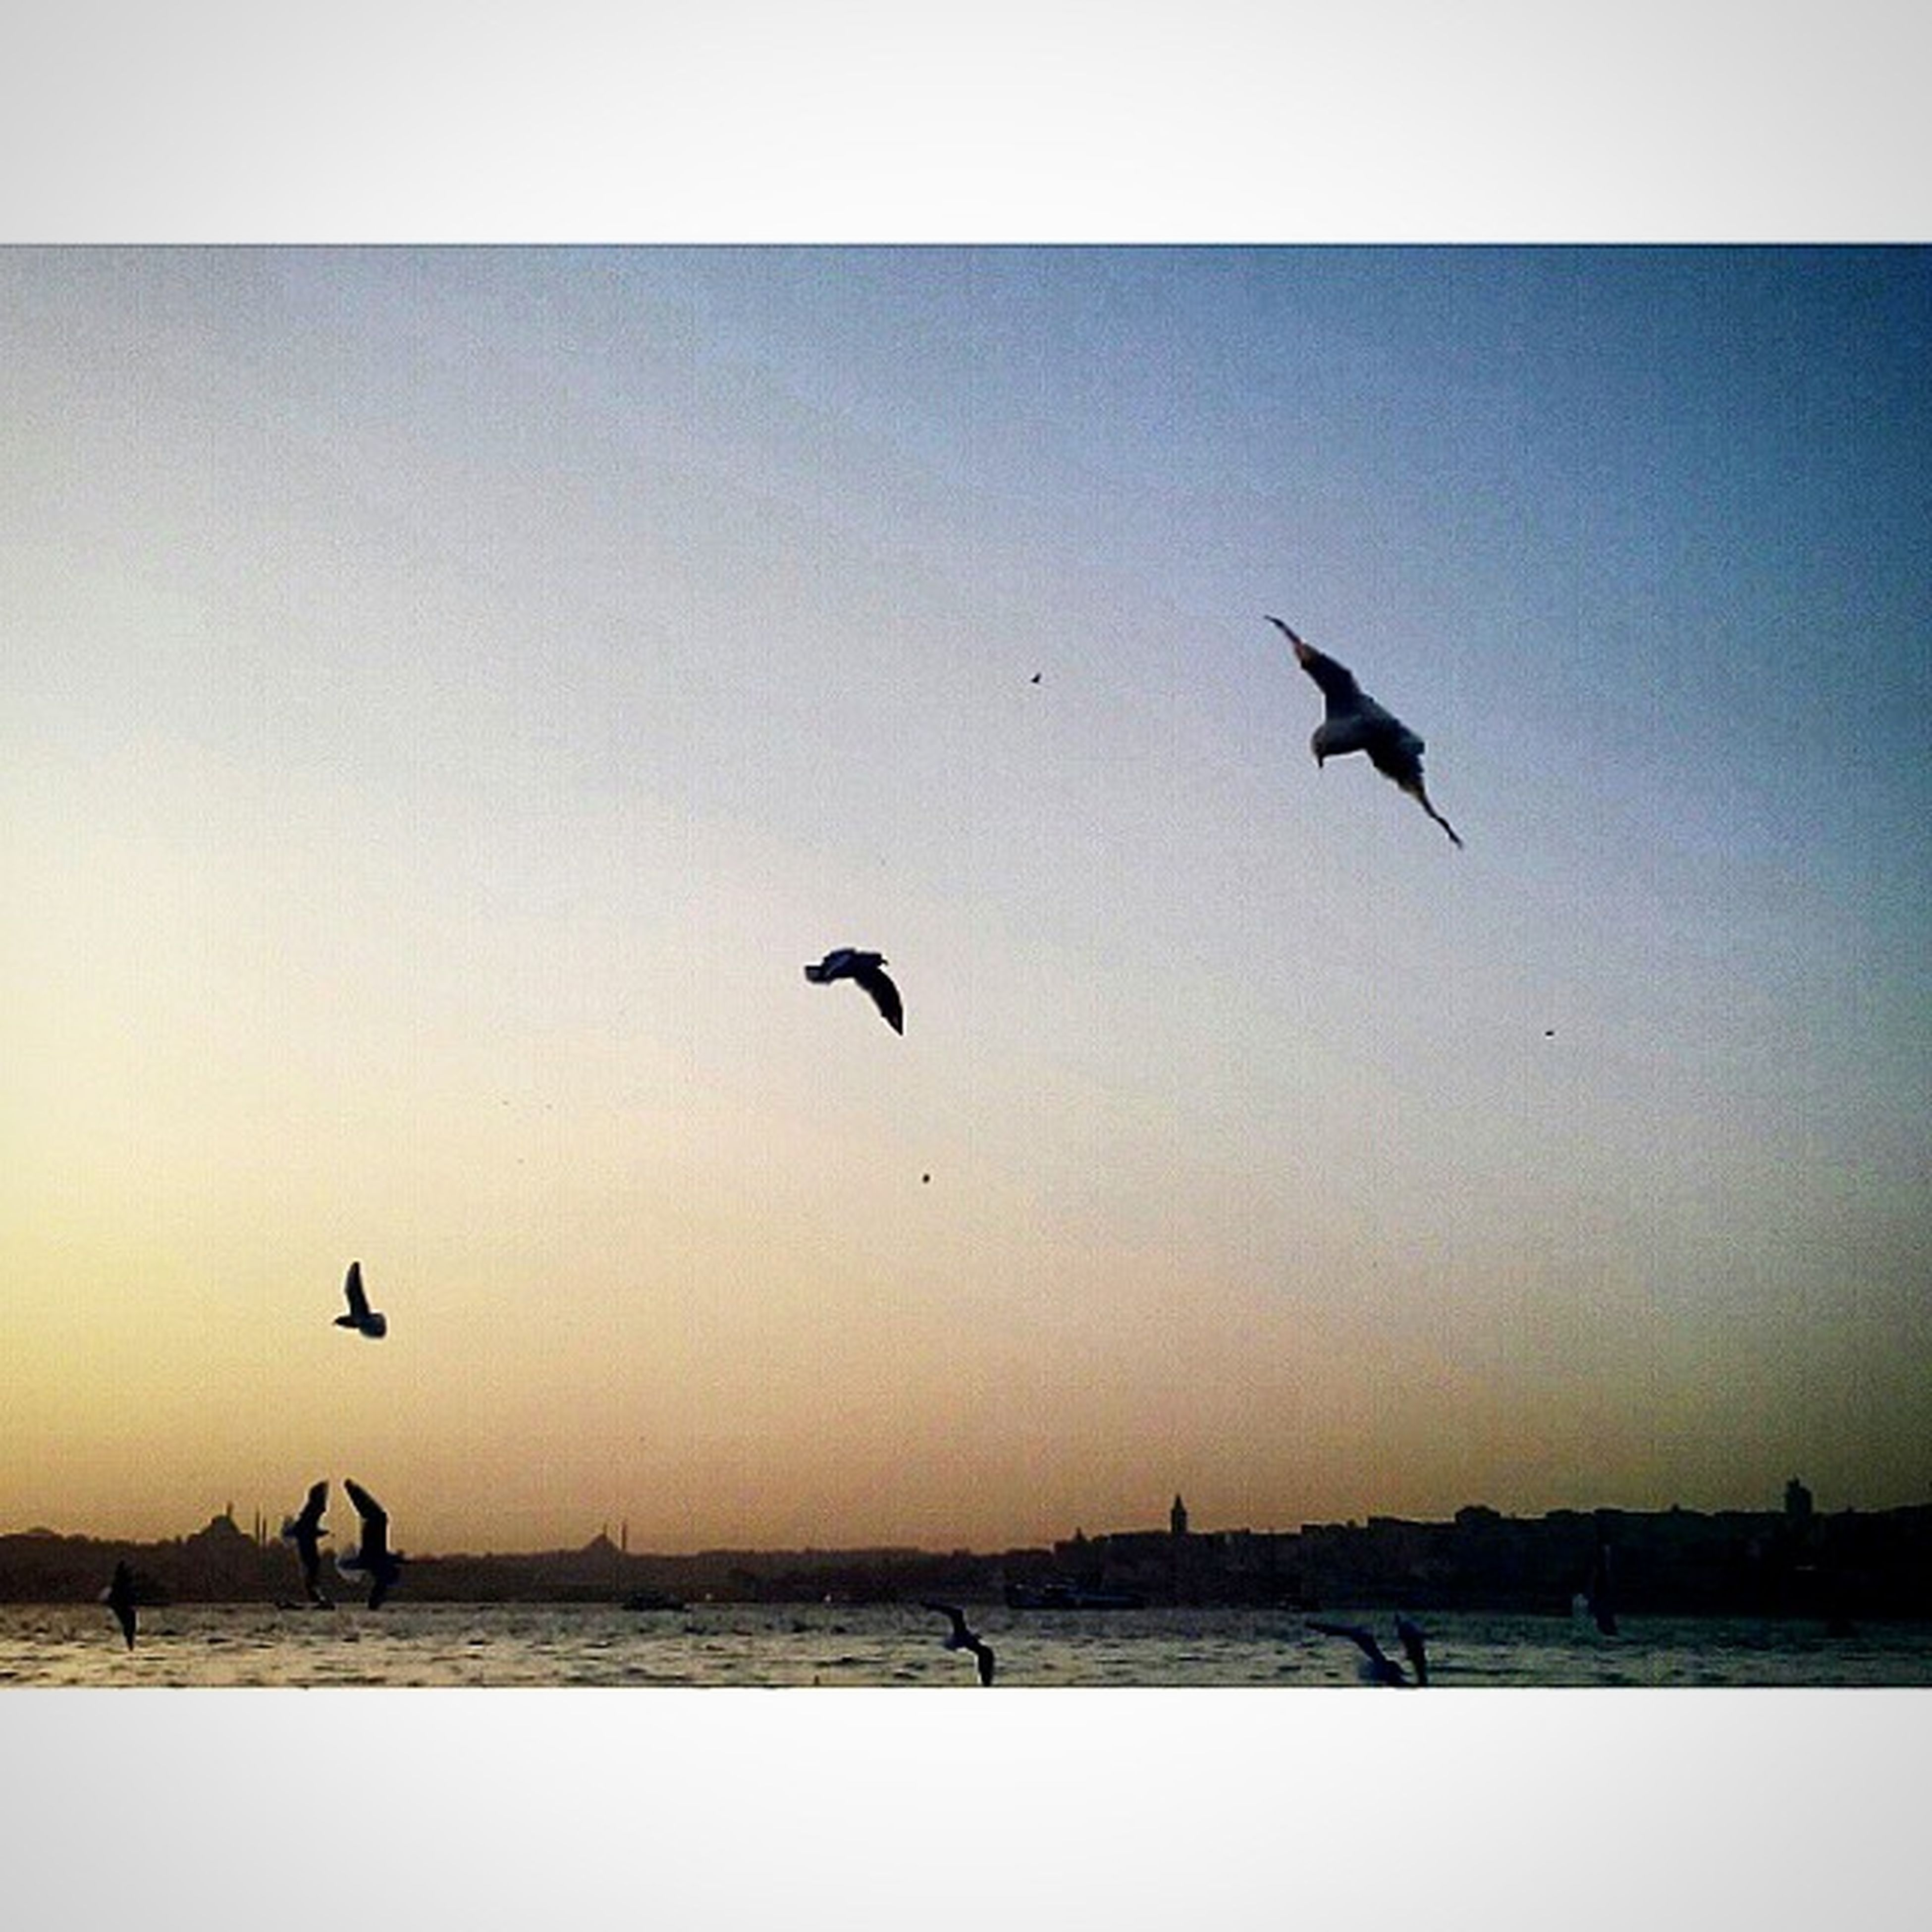 bird, animal themes, flying, animals in the wild, wildlife, transfer print, spread wings, silhouette, auto post production filter, sunset, seagull, water, mid-air, flock of birds, sky, nature, clear sky, sea, outdoors